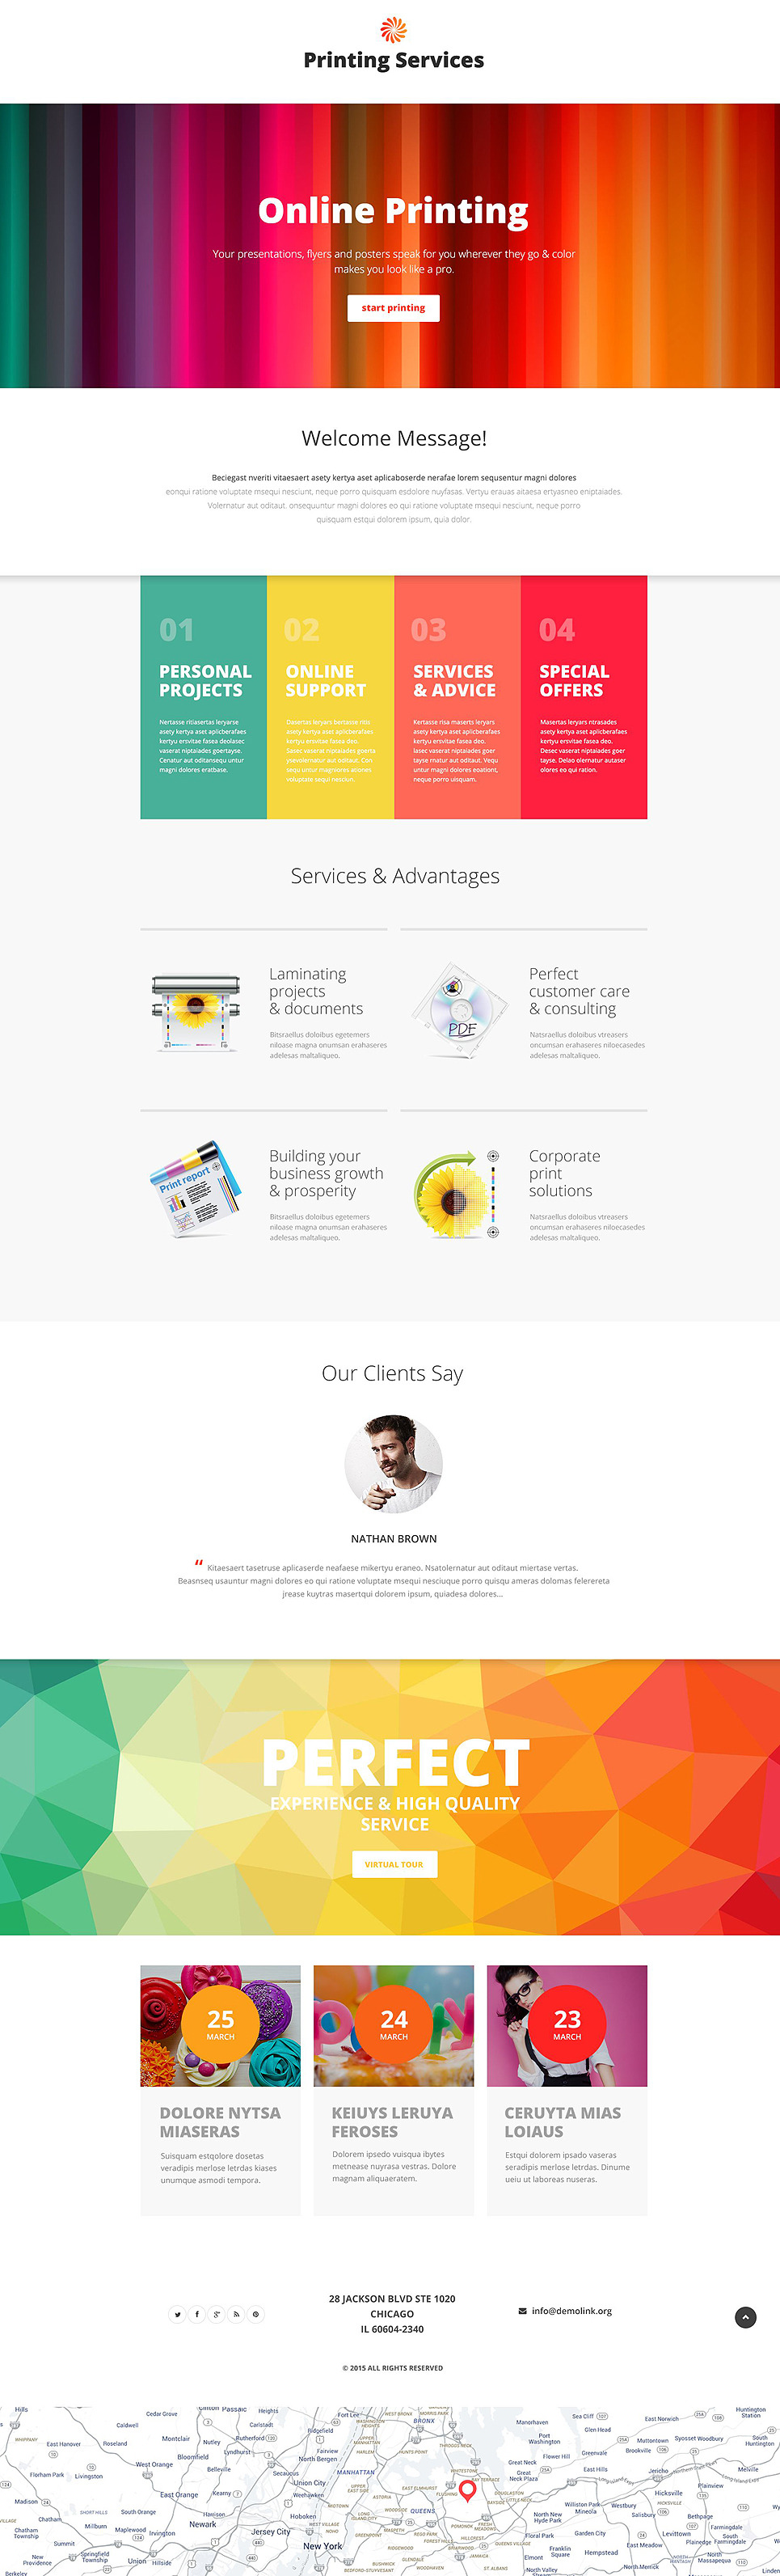 Print Shop Responsive Landing Page Template New Screenshots BIG